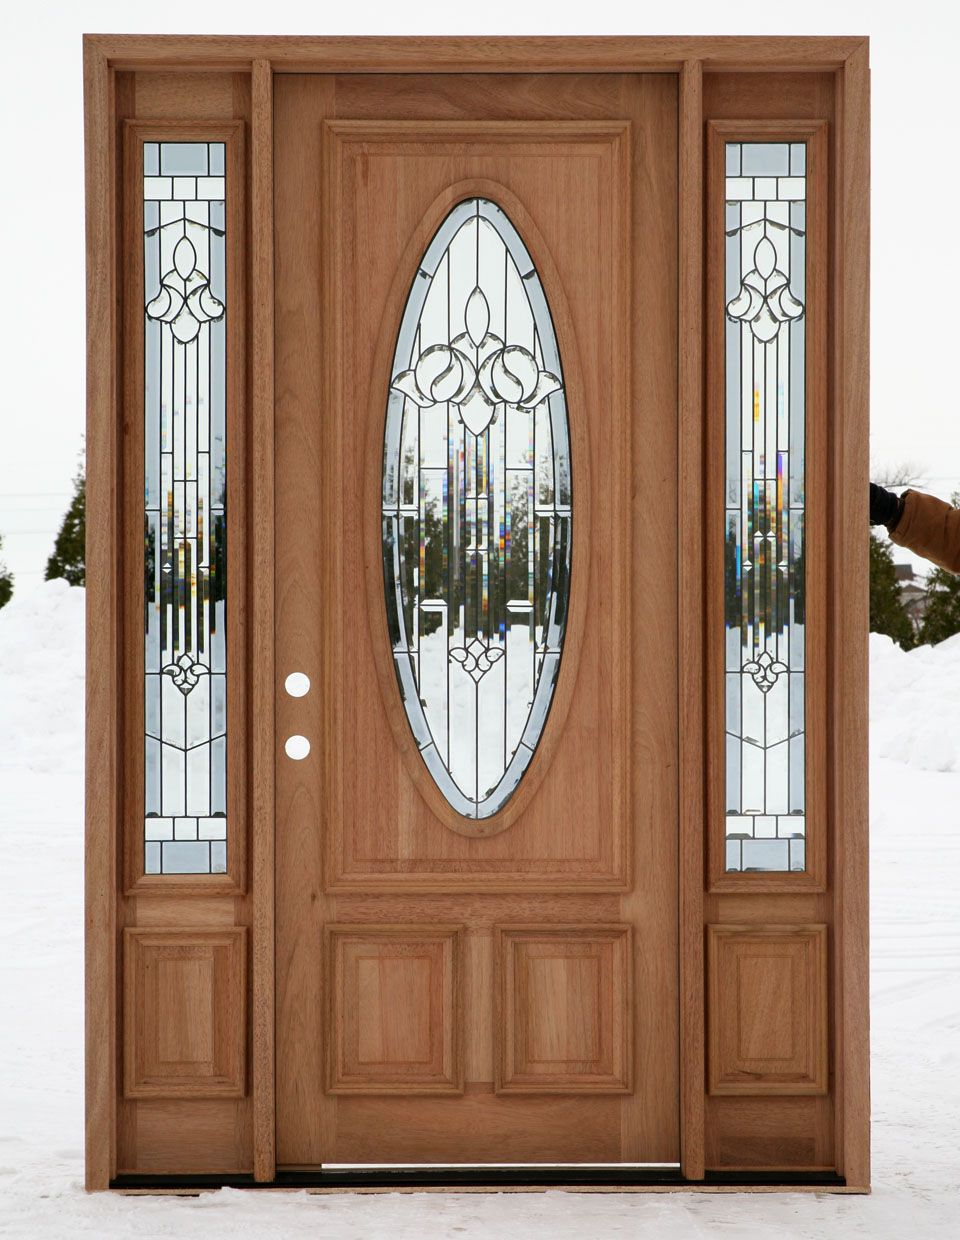 Front Entrance Doors | Exterior Doors, Entry Doors, Wood Doors, Garage Doors .